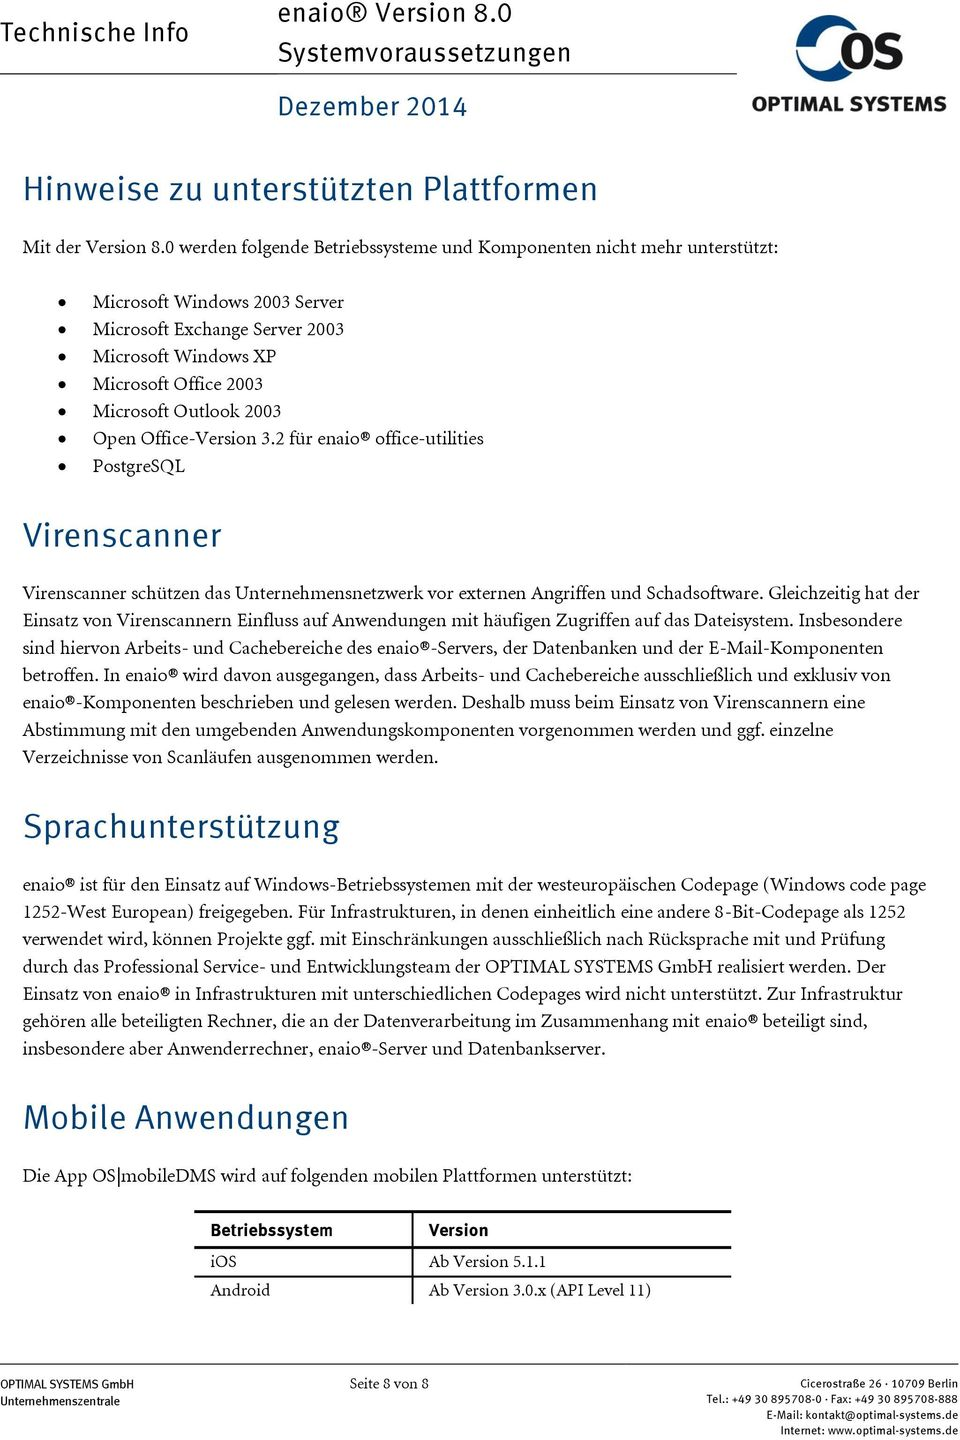 2003 Open Office-Version 3.2 für enaio office-utilities PostgreSQL Virenscanner Virenscanner schützen das Unternehmensnetzwerk vor externen Angriffen und Schadsoftware.